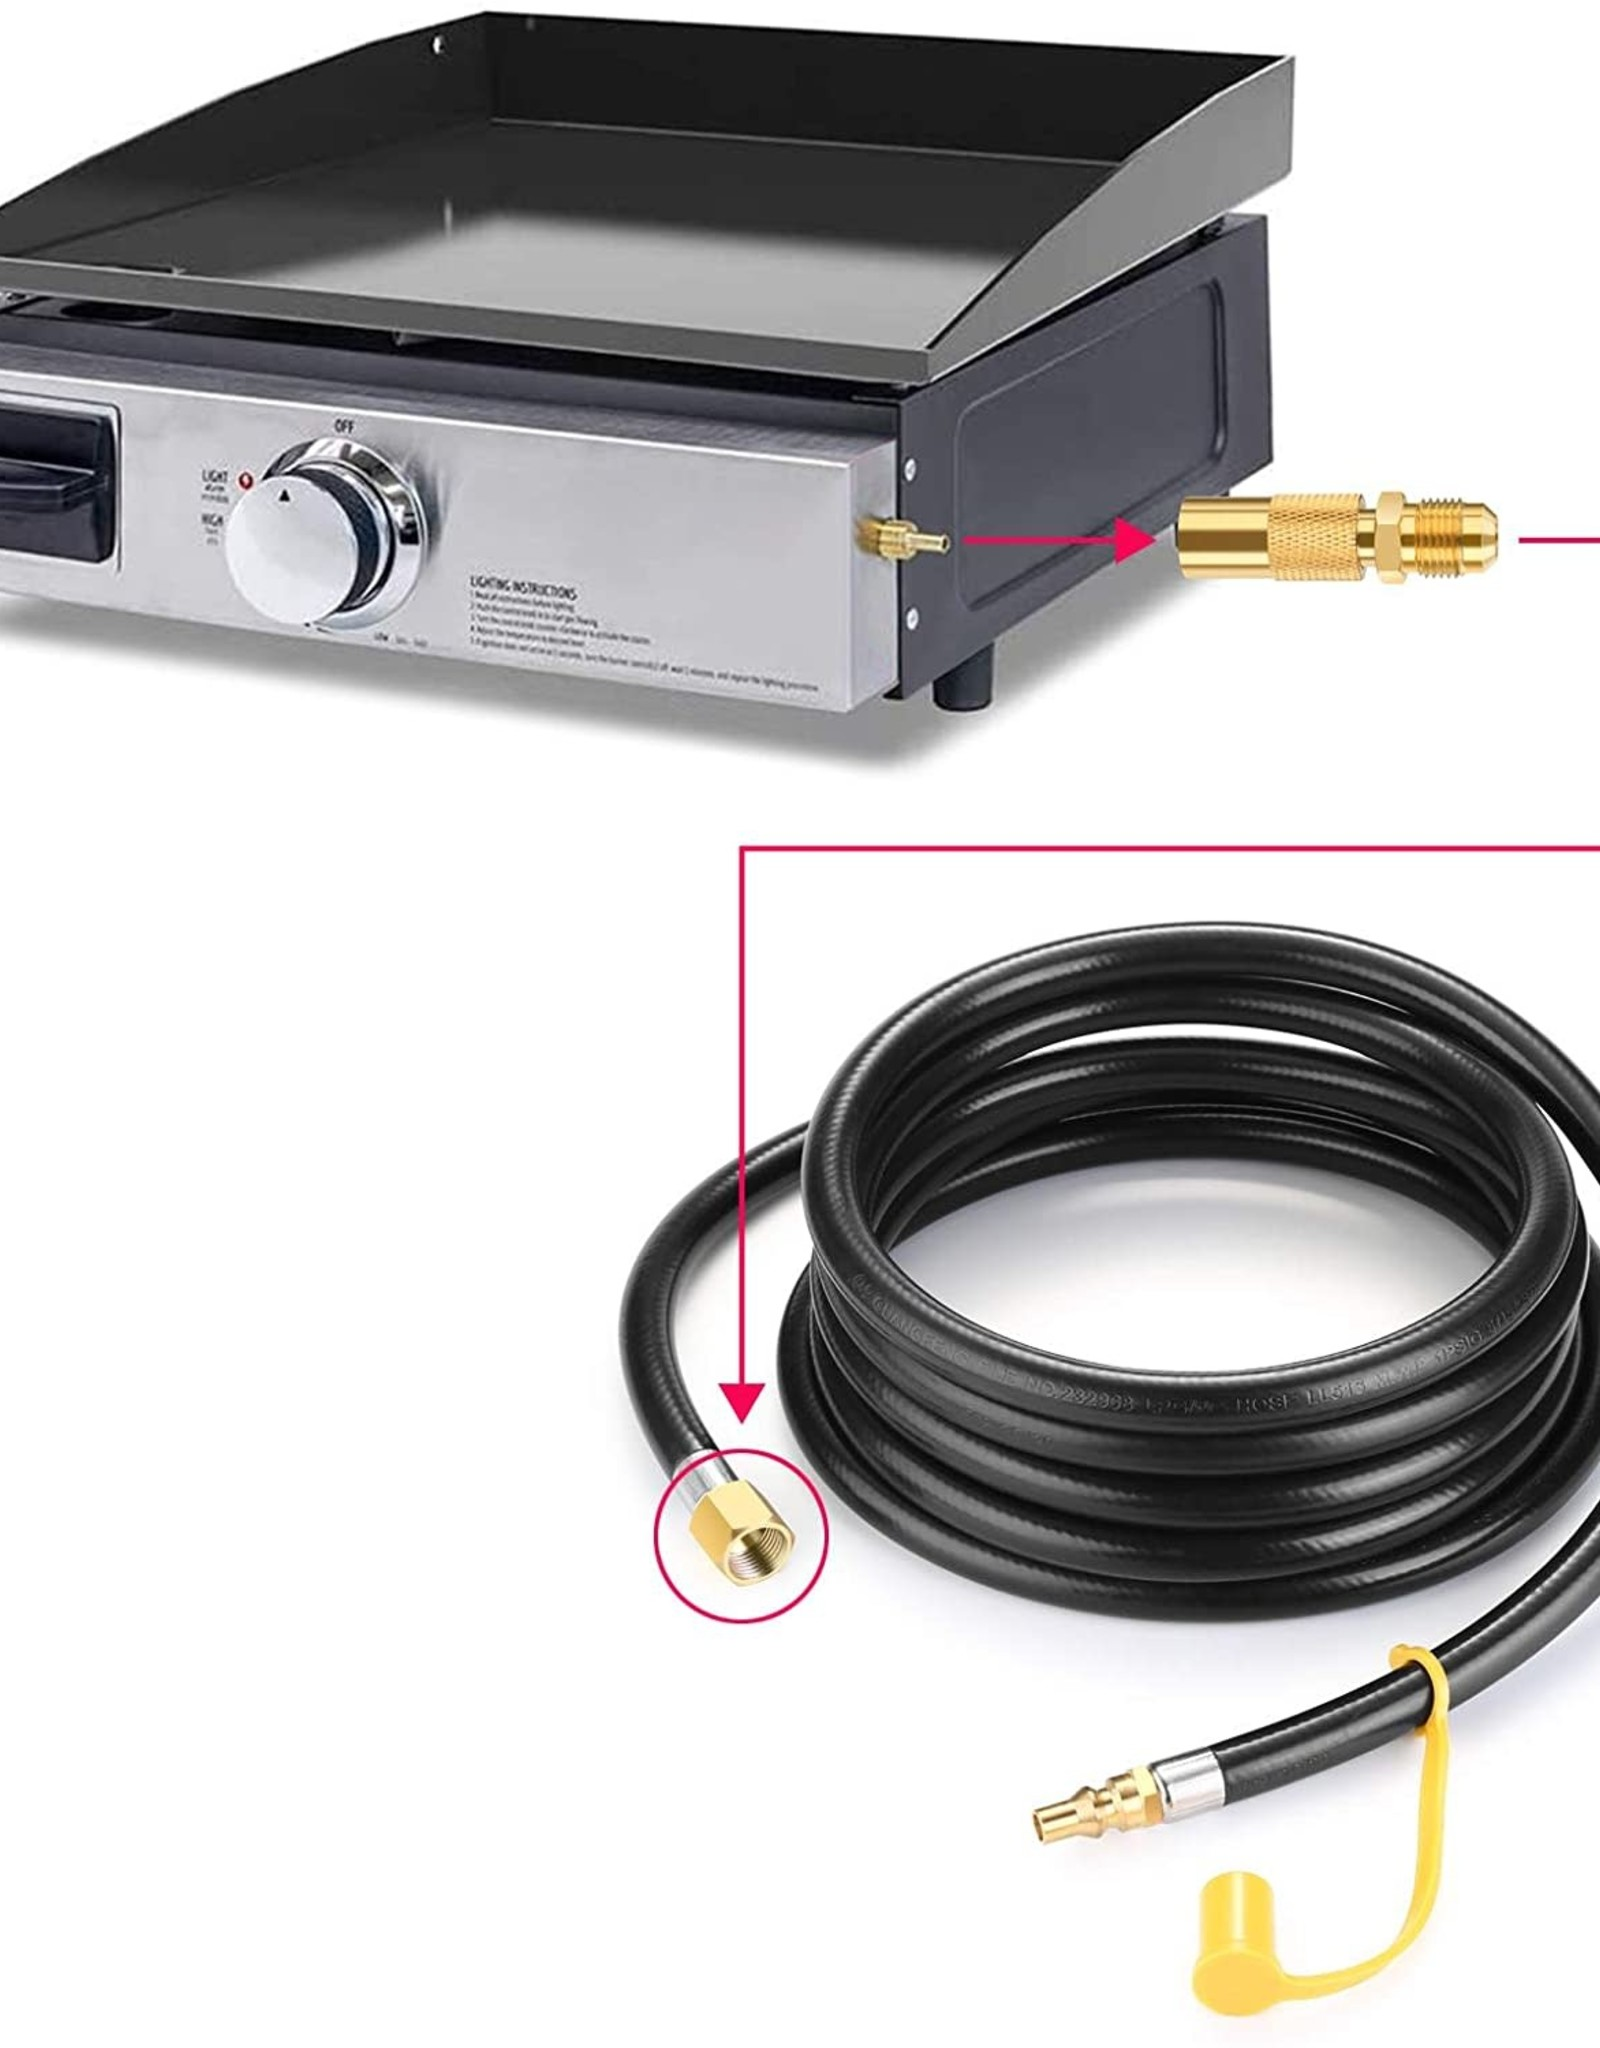 WADEO WADEO 12 ft. RV Quick Connect Adapter Hose for Blackstone Tabletop Griddles